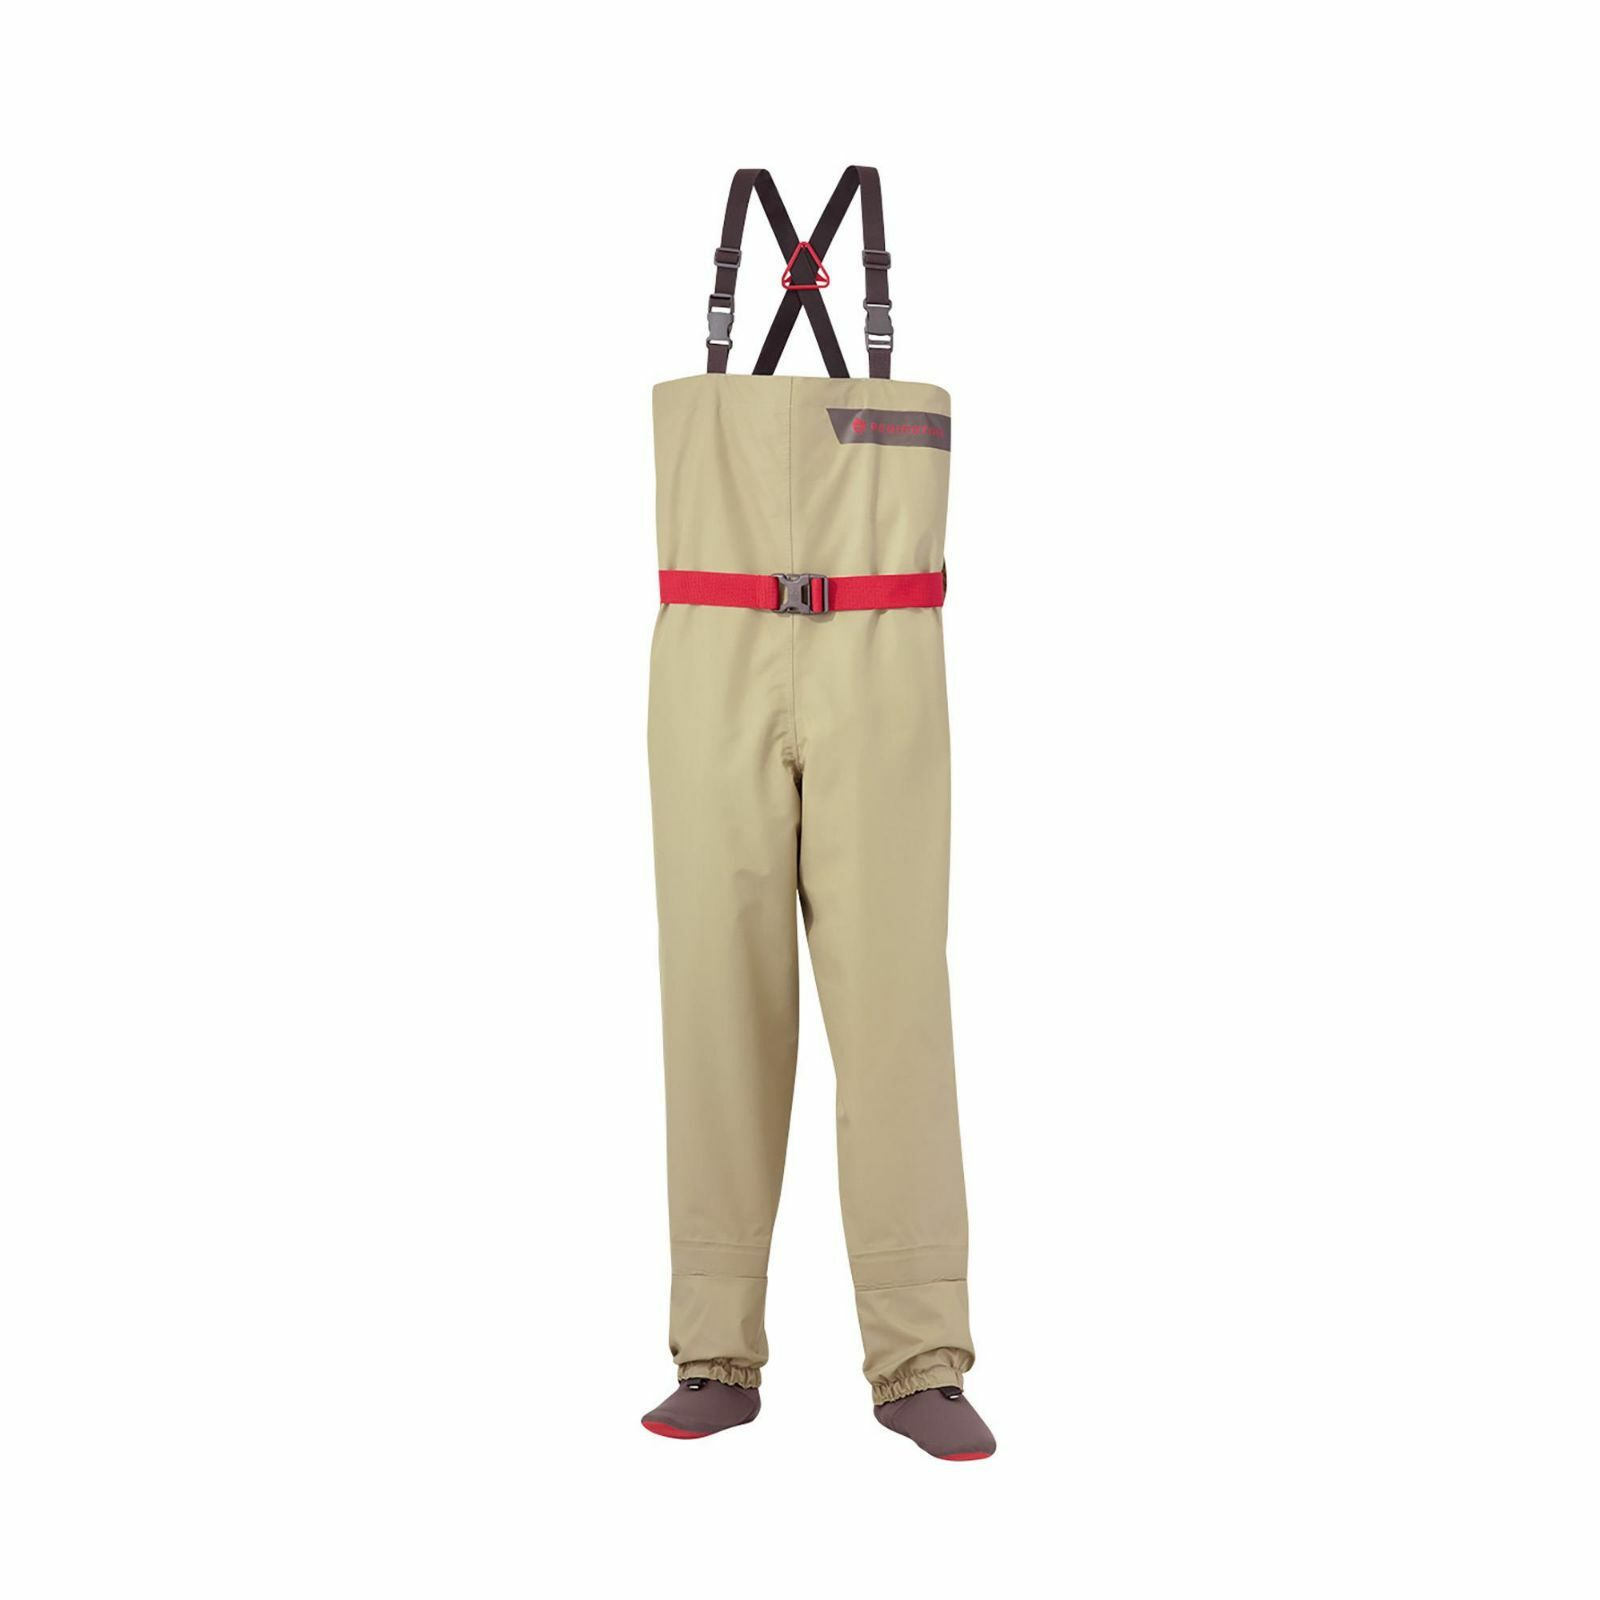 moda rossoington Crosswater Youth Waders nuovo modello with